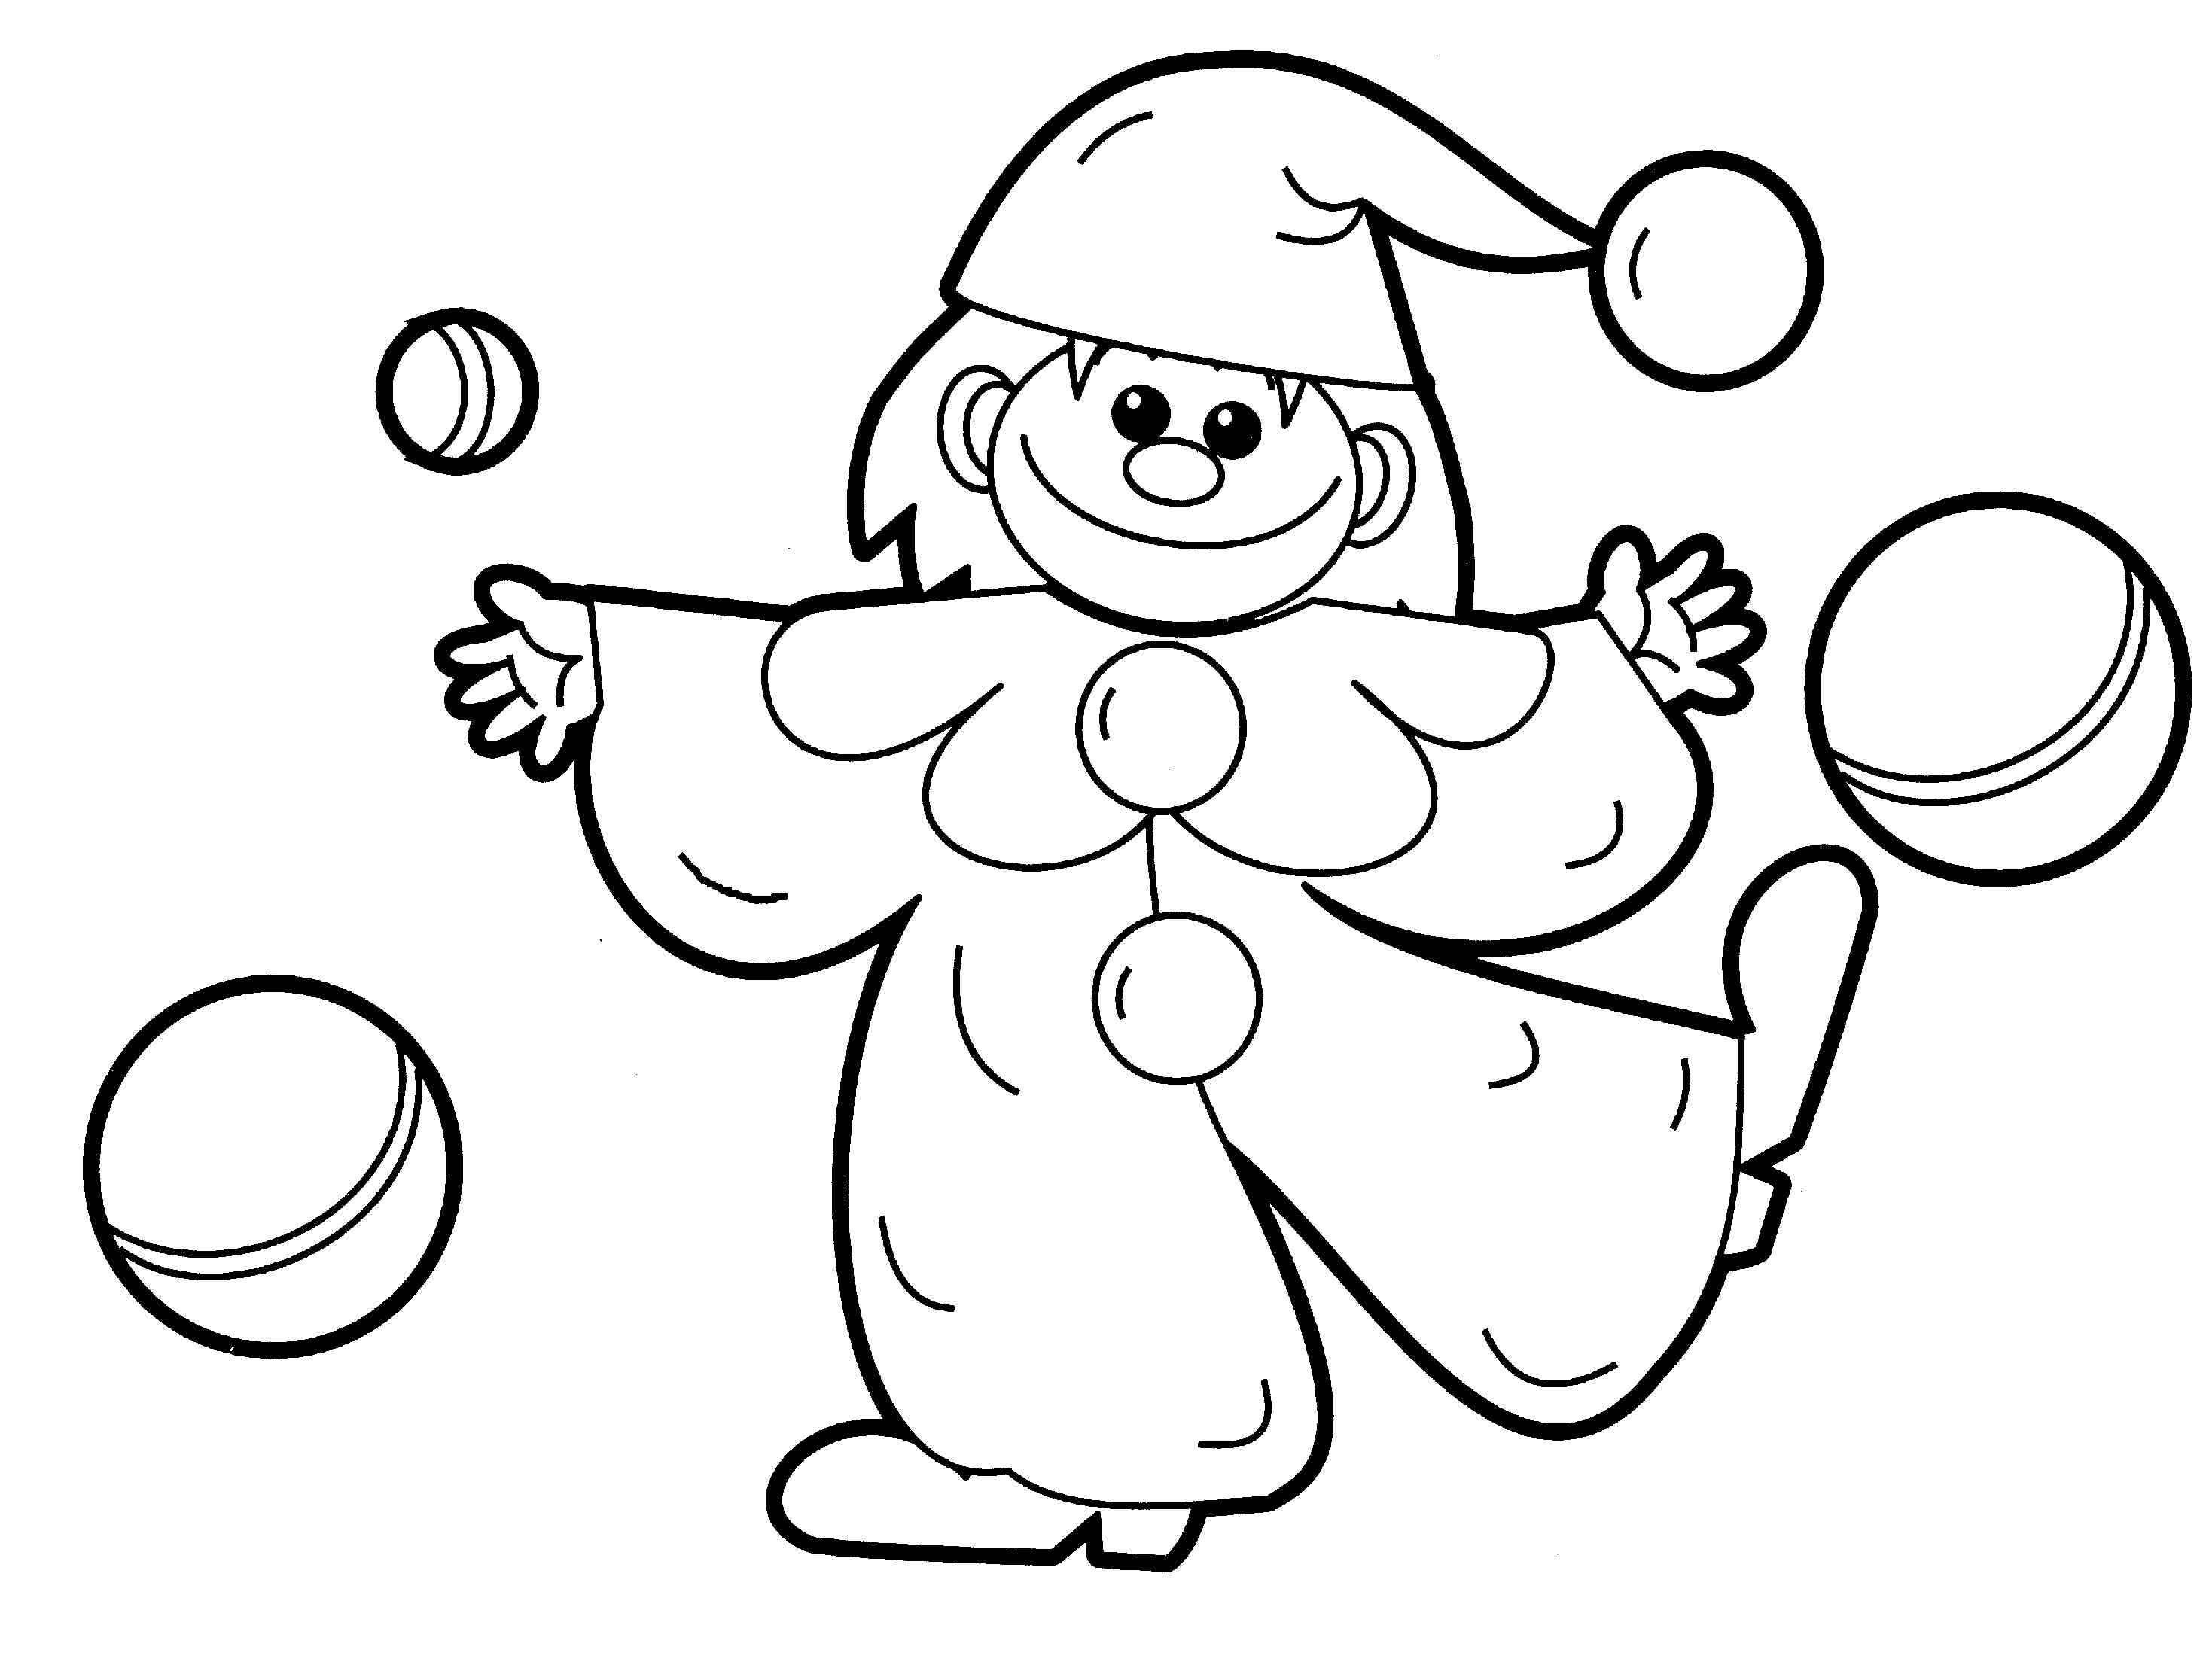 fun colouring pages for kids free 9 fun coloring pages in ai for pages colouring fun kids